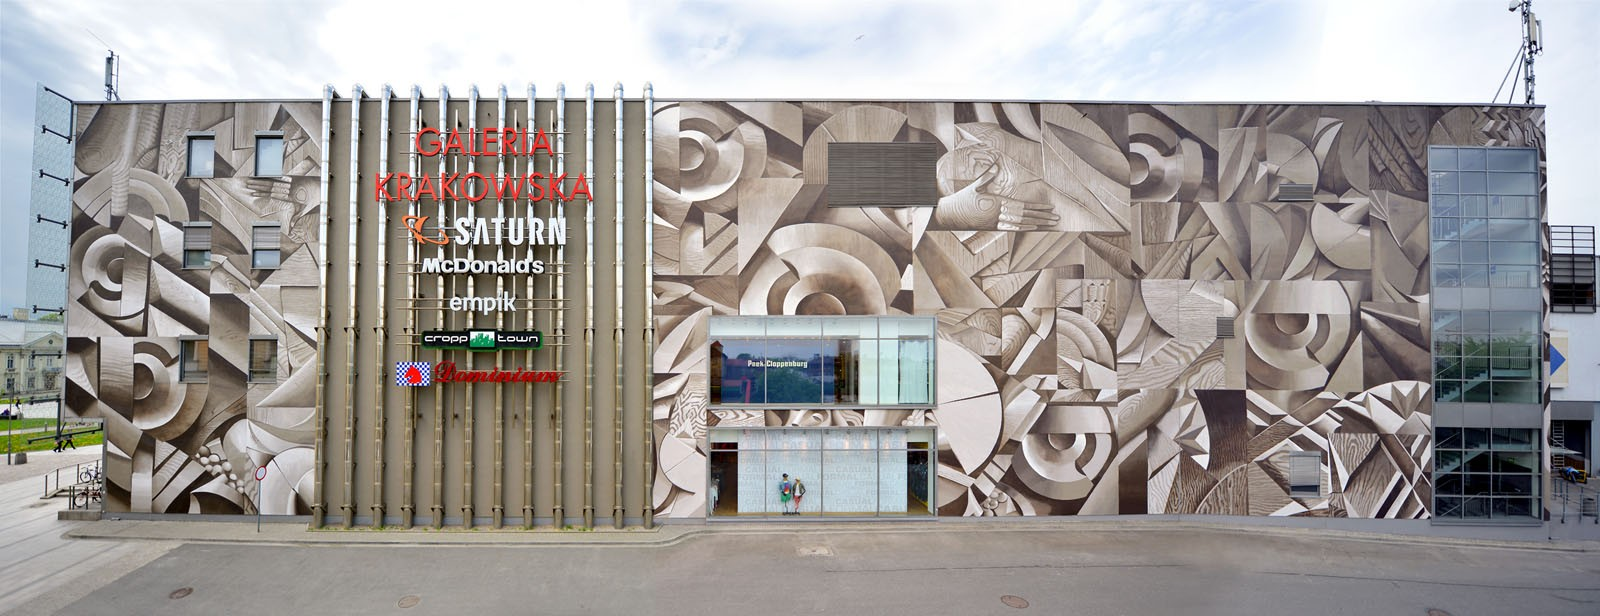 Galeria Krakowska mural in Cracow shopping mall Pawia street | Artistic Murals | Our offer